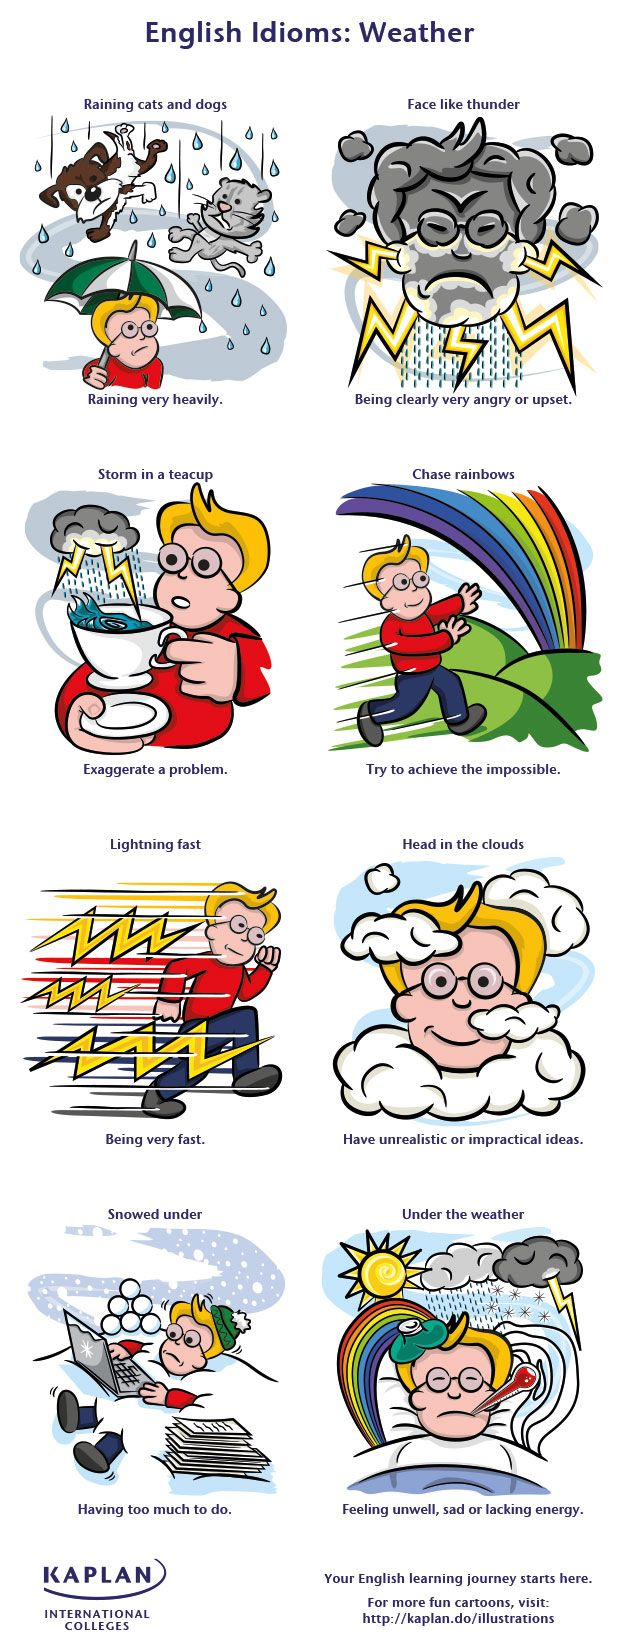 English Idioms: The Weather